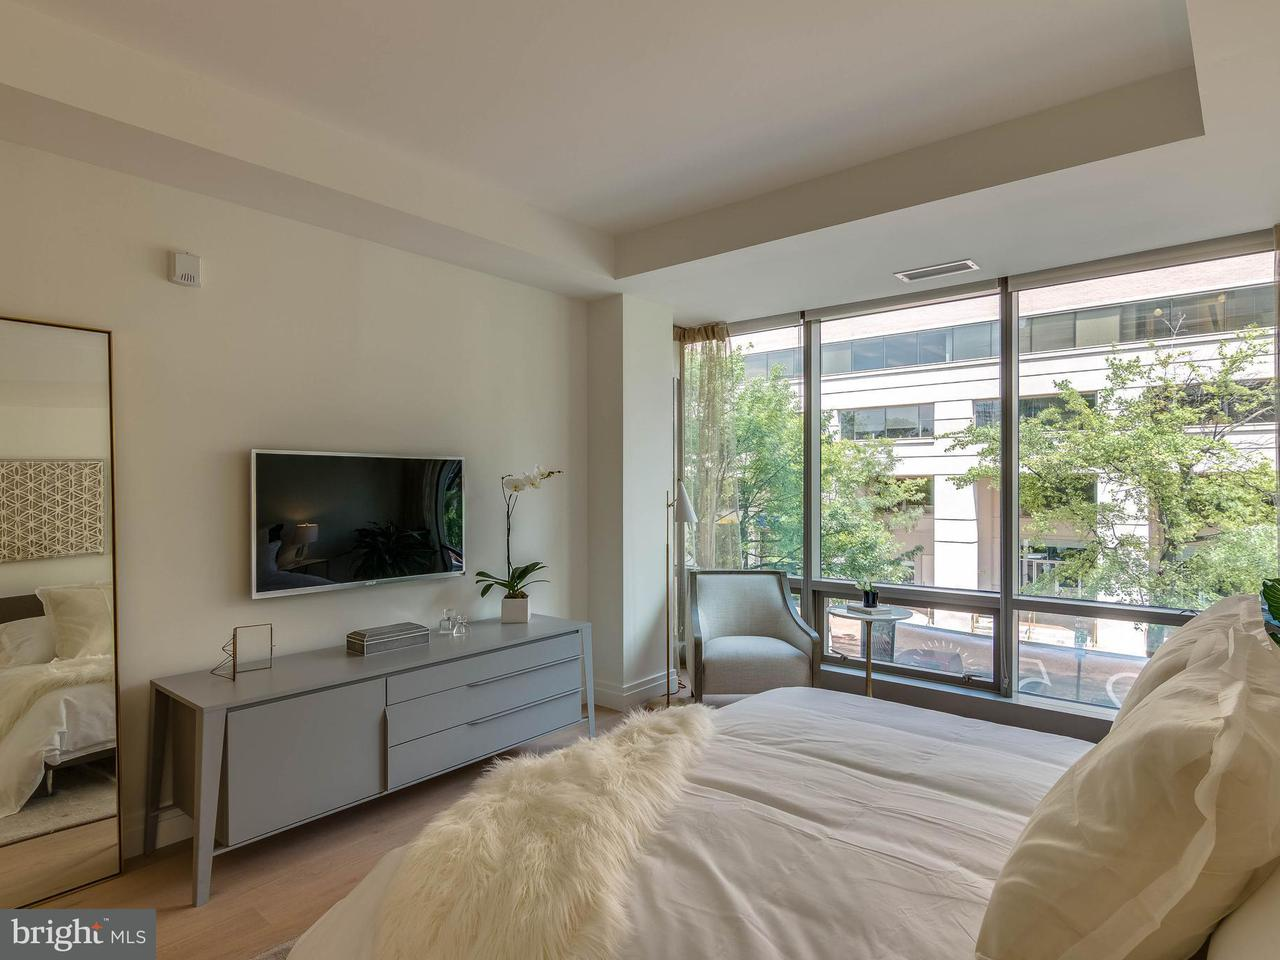 Additional photo for property listing at 2501 M ST NW #203 2501 M ST NW #203 Washington, コロンビア特別区 20037 アメリカ合衆国